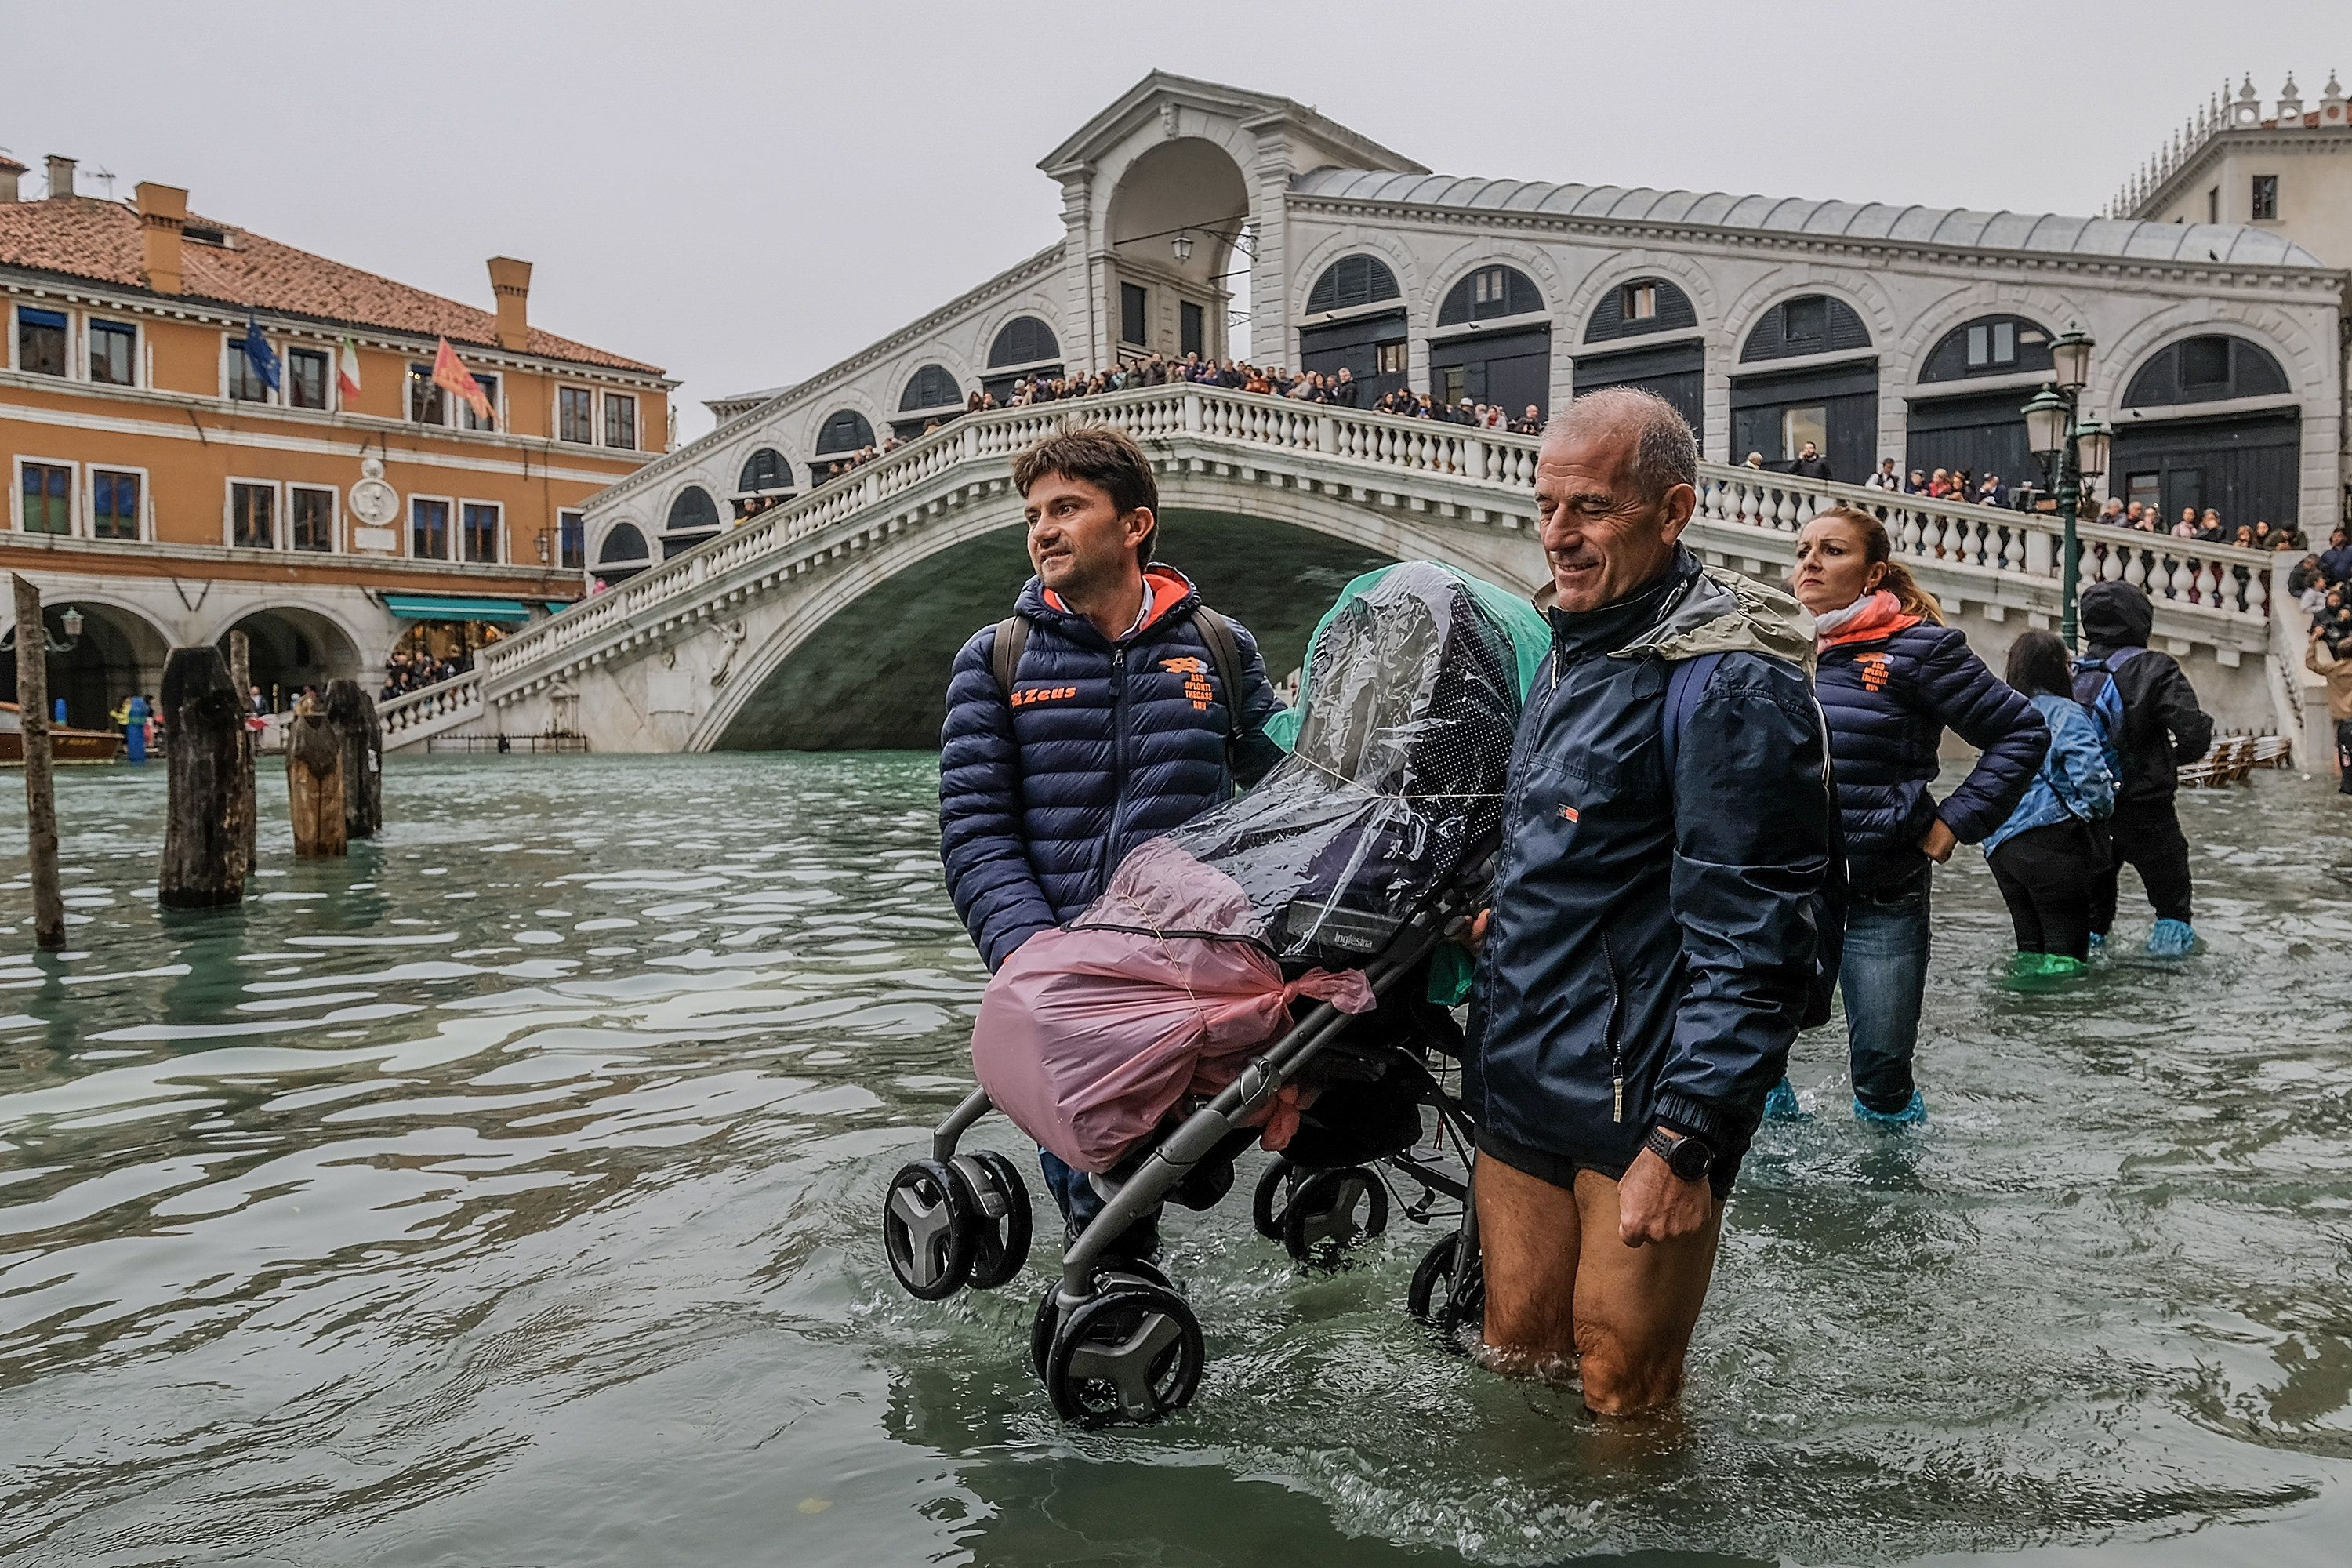 VENICE, ITALY - OCTOBER 29: Tourists carry a stroller through the flood waters on October 29, 2018 in Venice, Italy. Today due to the exceptional level of the 'acqua alta' that reaced 156 cm schools and hospitals of Venice remained closed the authorities have also advised citizens against leaving their homes  (Photo by Stefano Mazzola/Awakening/Getty Images)